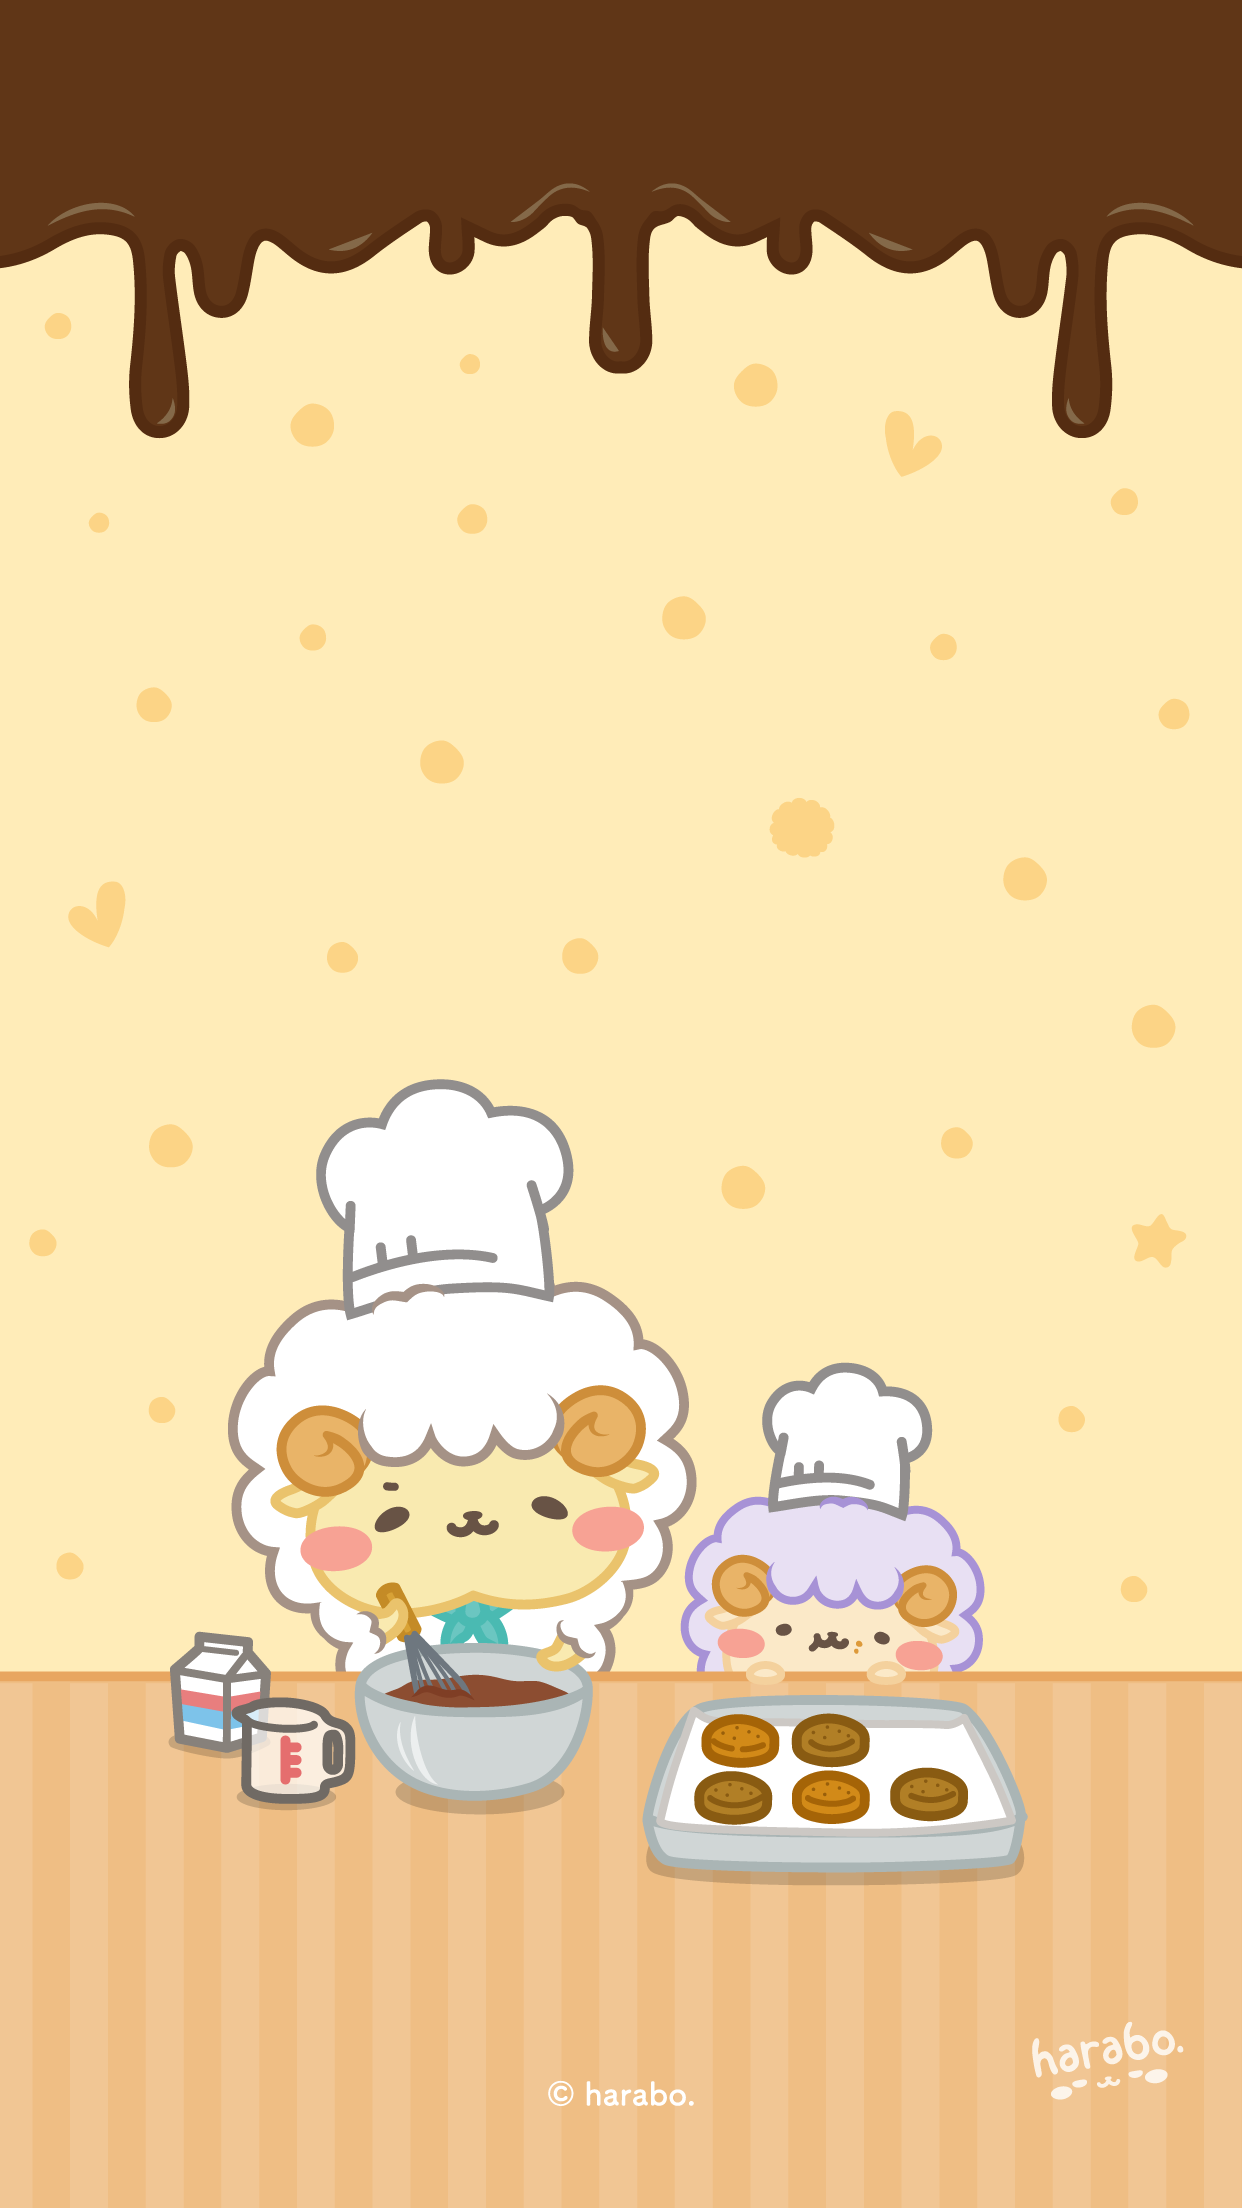 Mofu's Cooking!